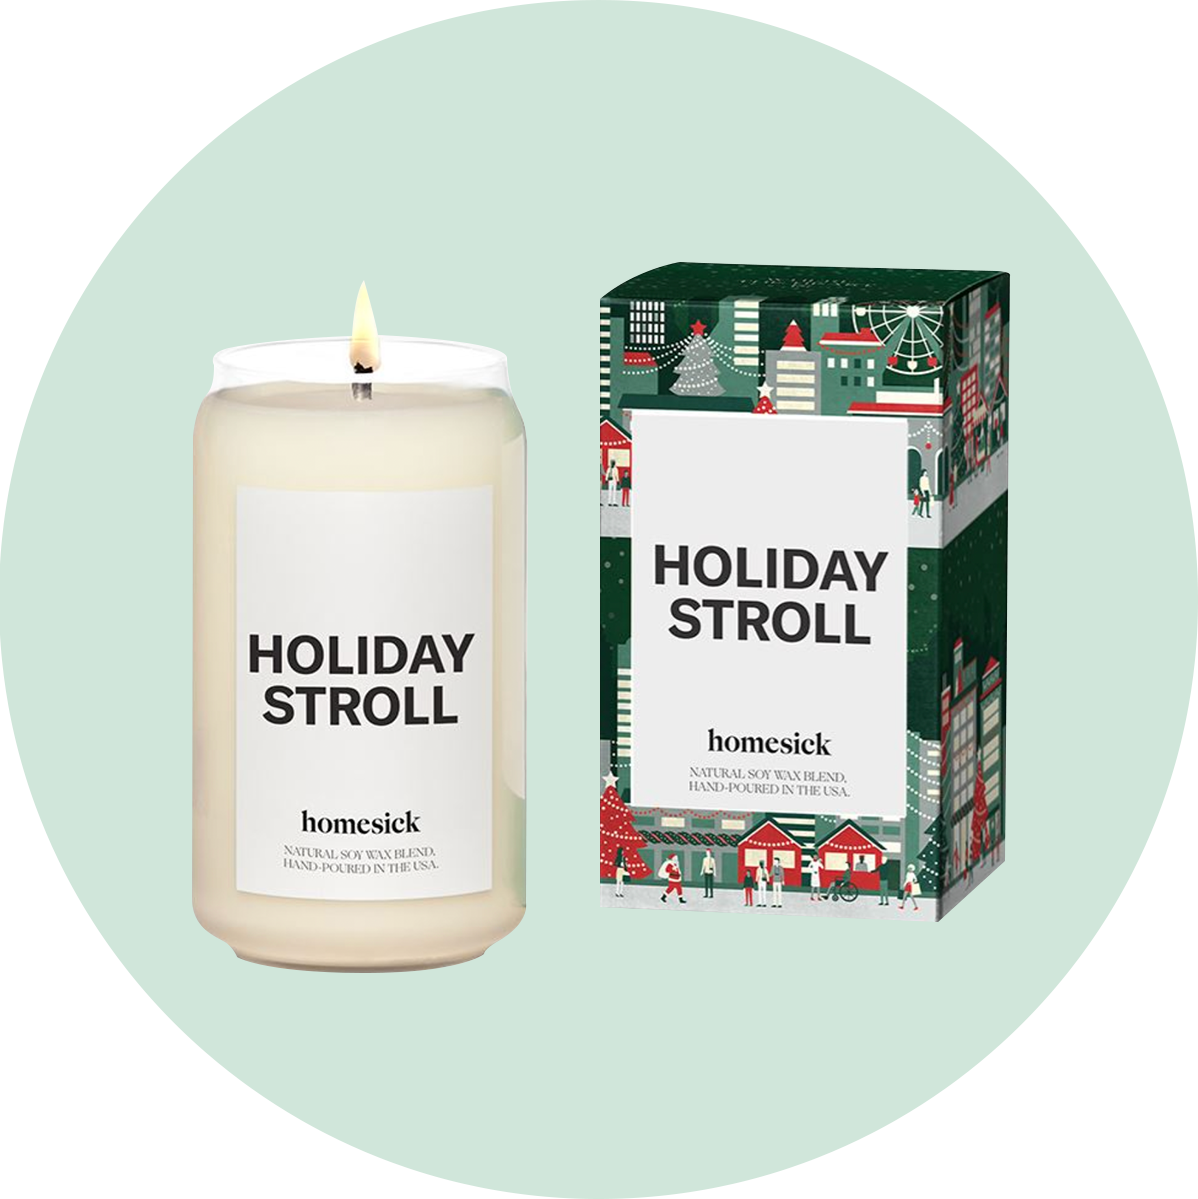 Homesick Holiday Stroll Candle